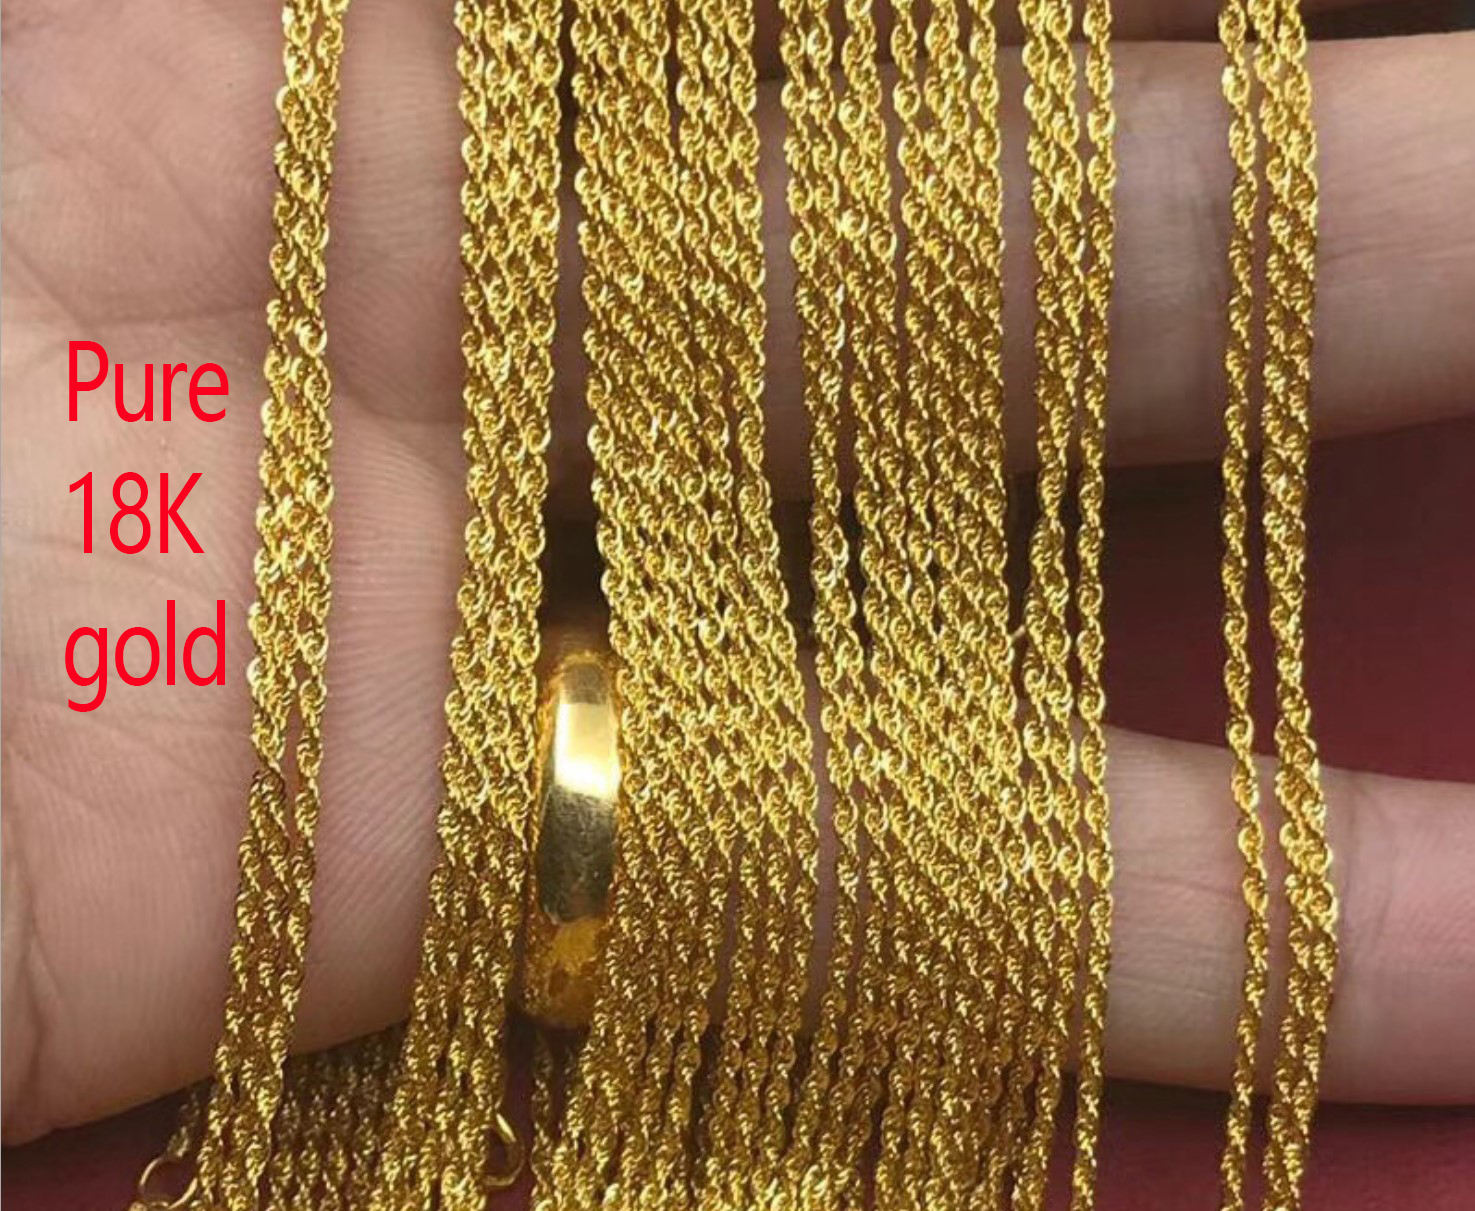 Pure Gold Jewely 18K Solid Gold Necklace Rose Gold Choke Rope Chain Necklace